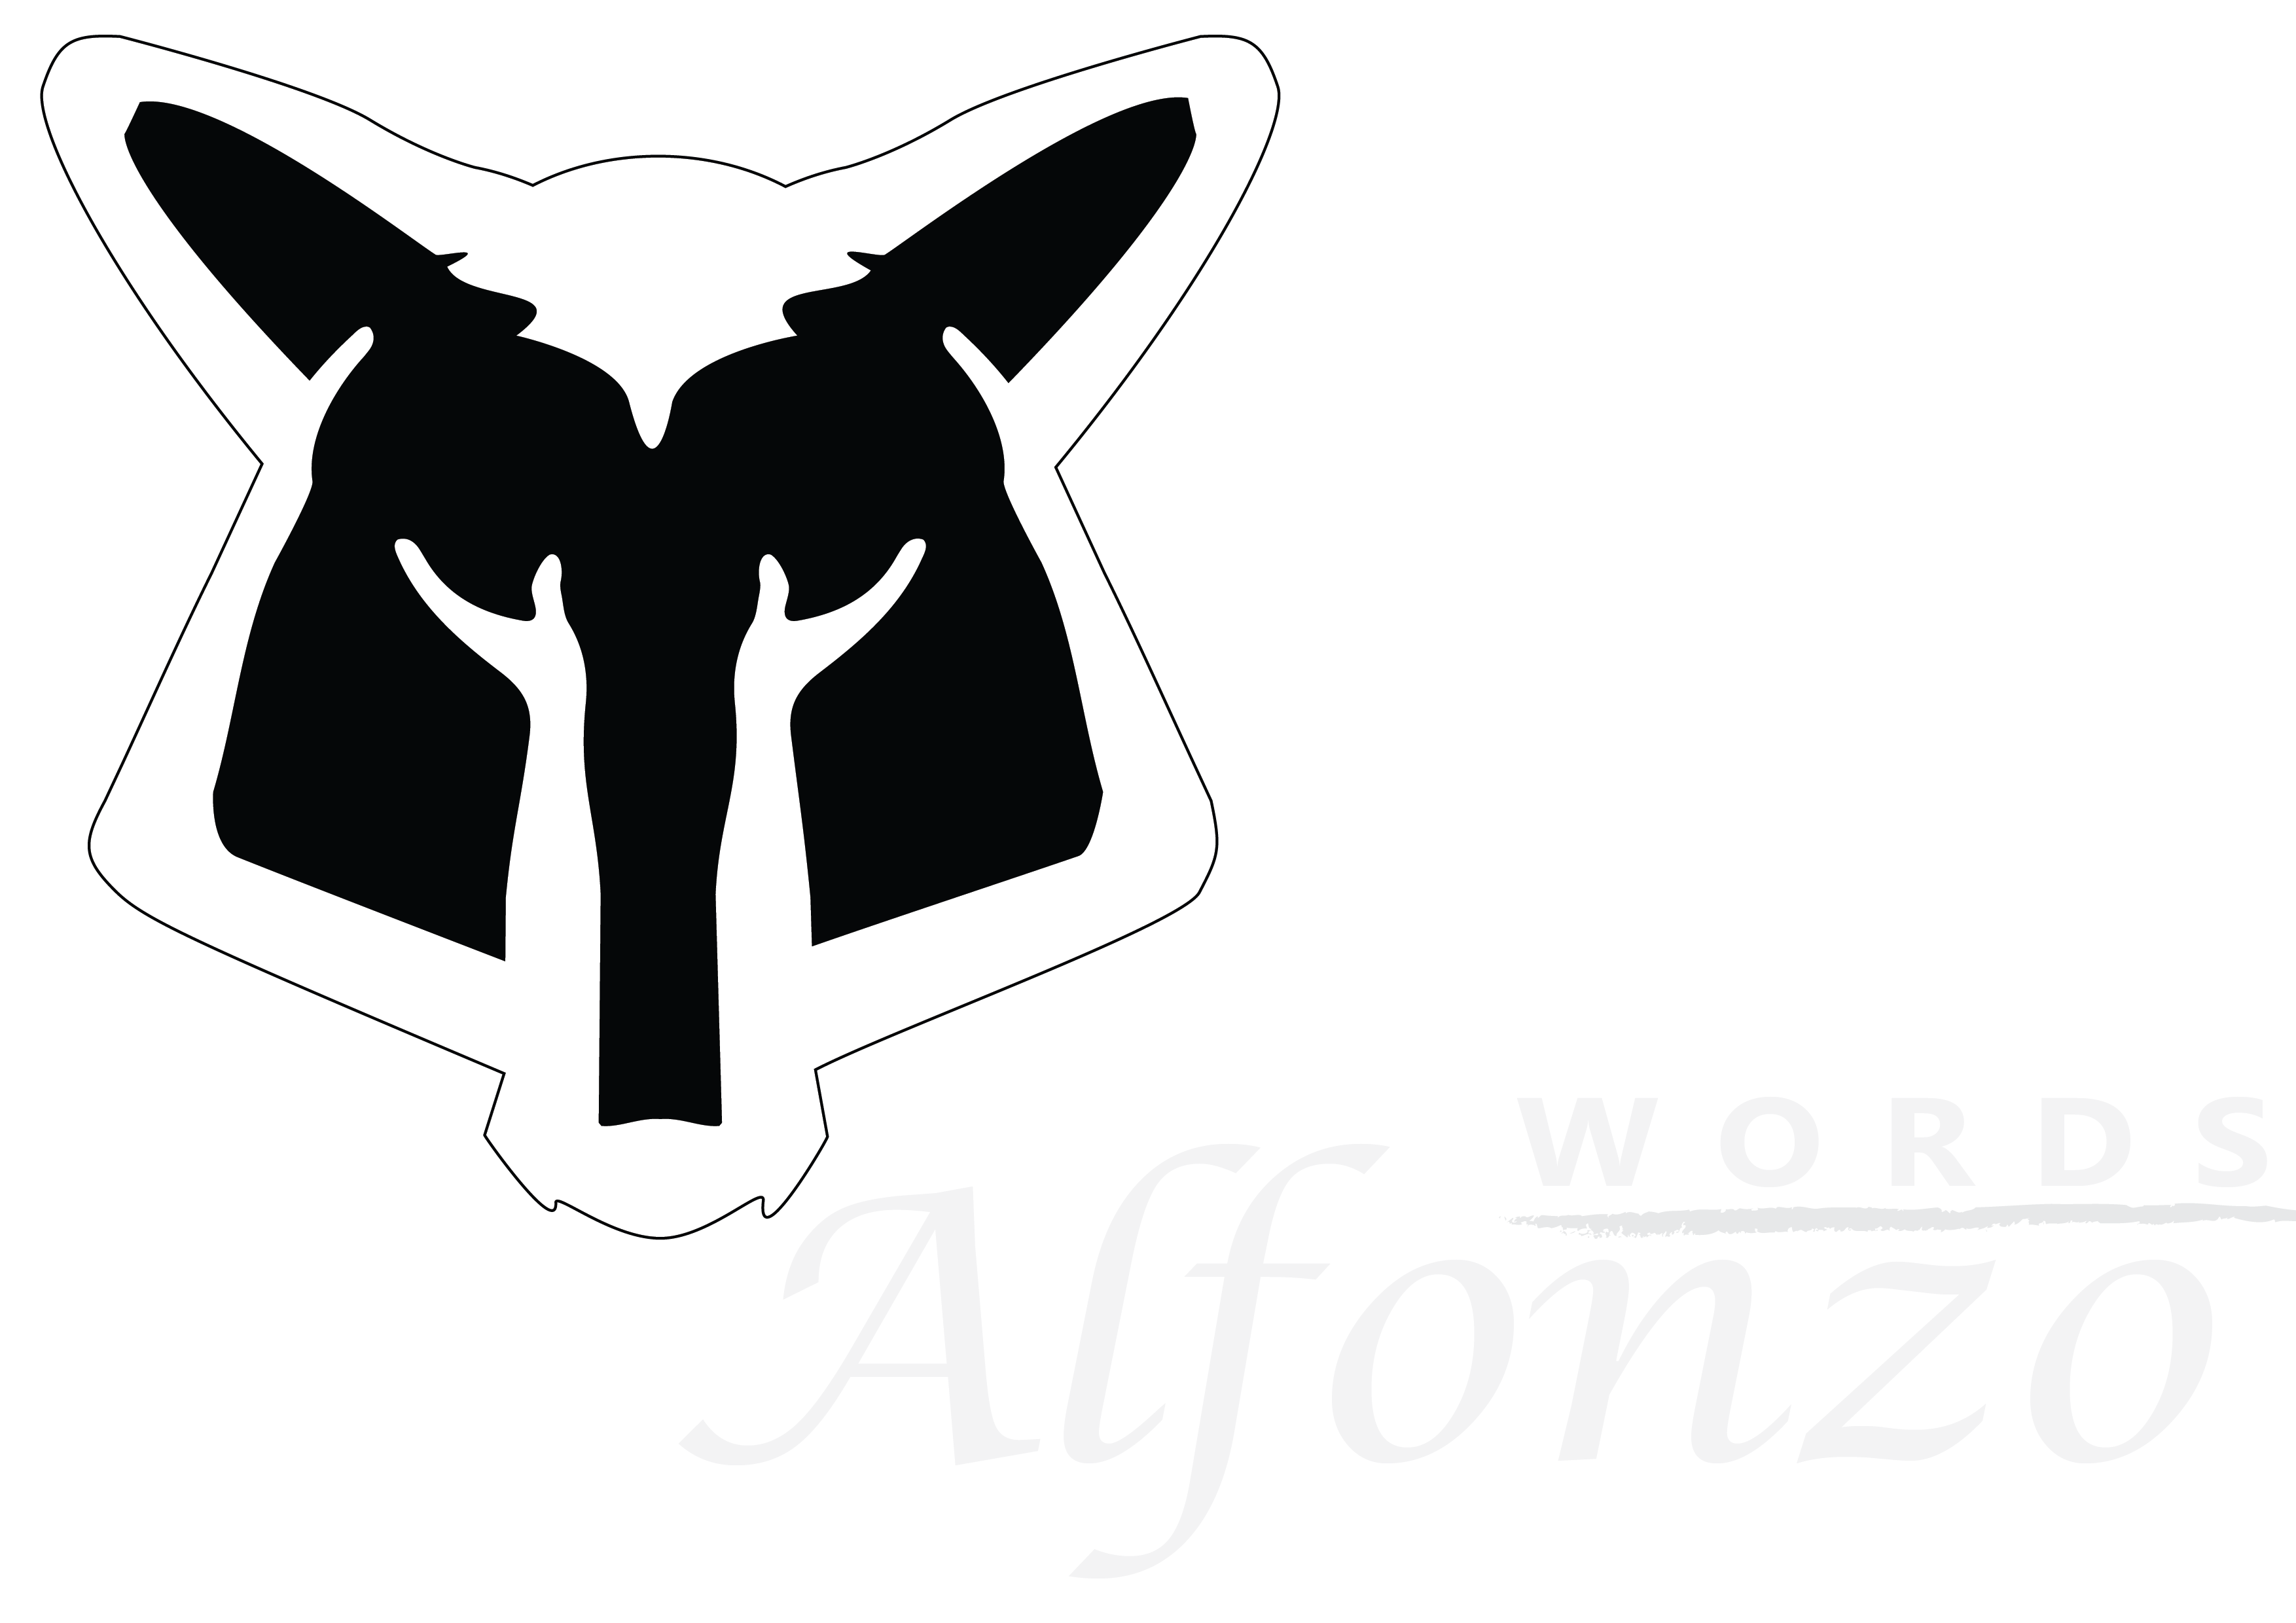 AlfonzoWords